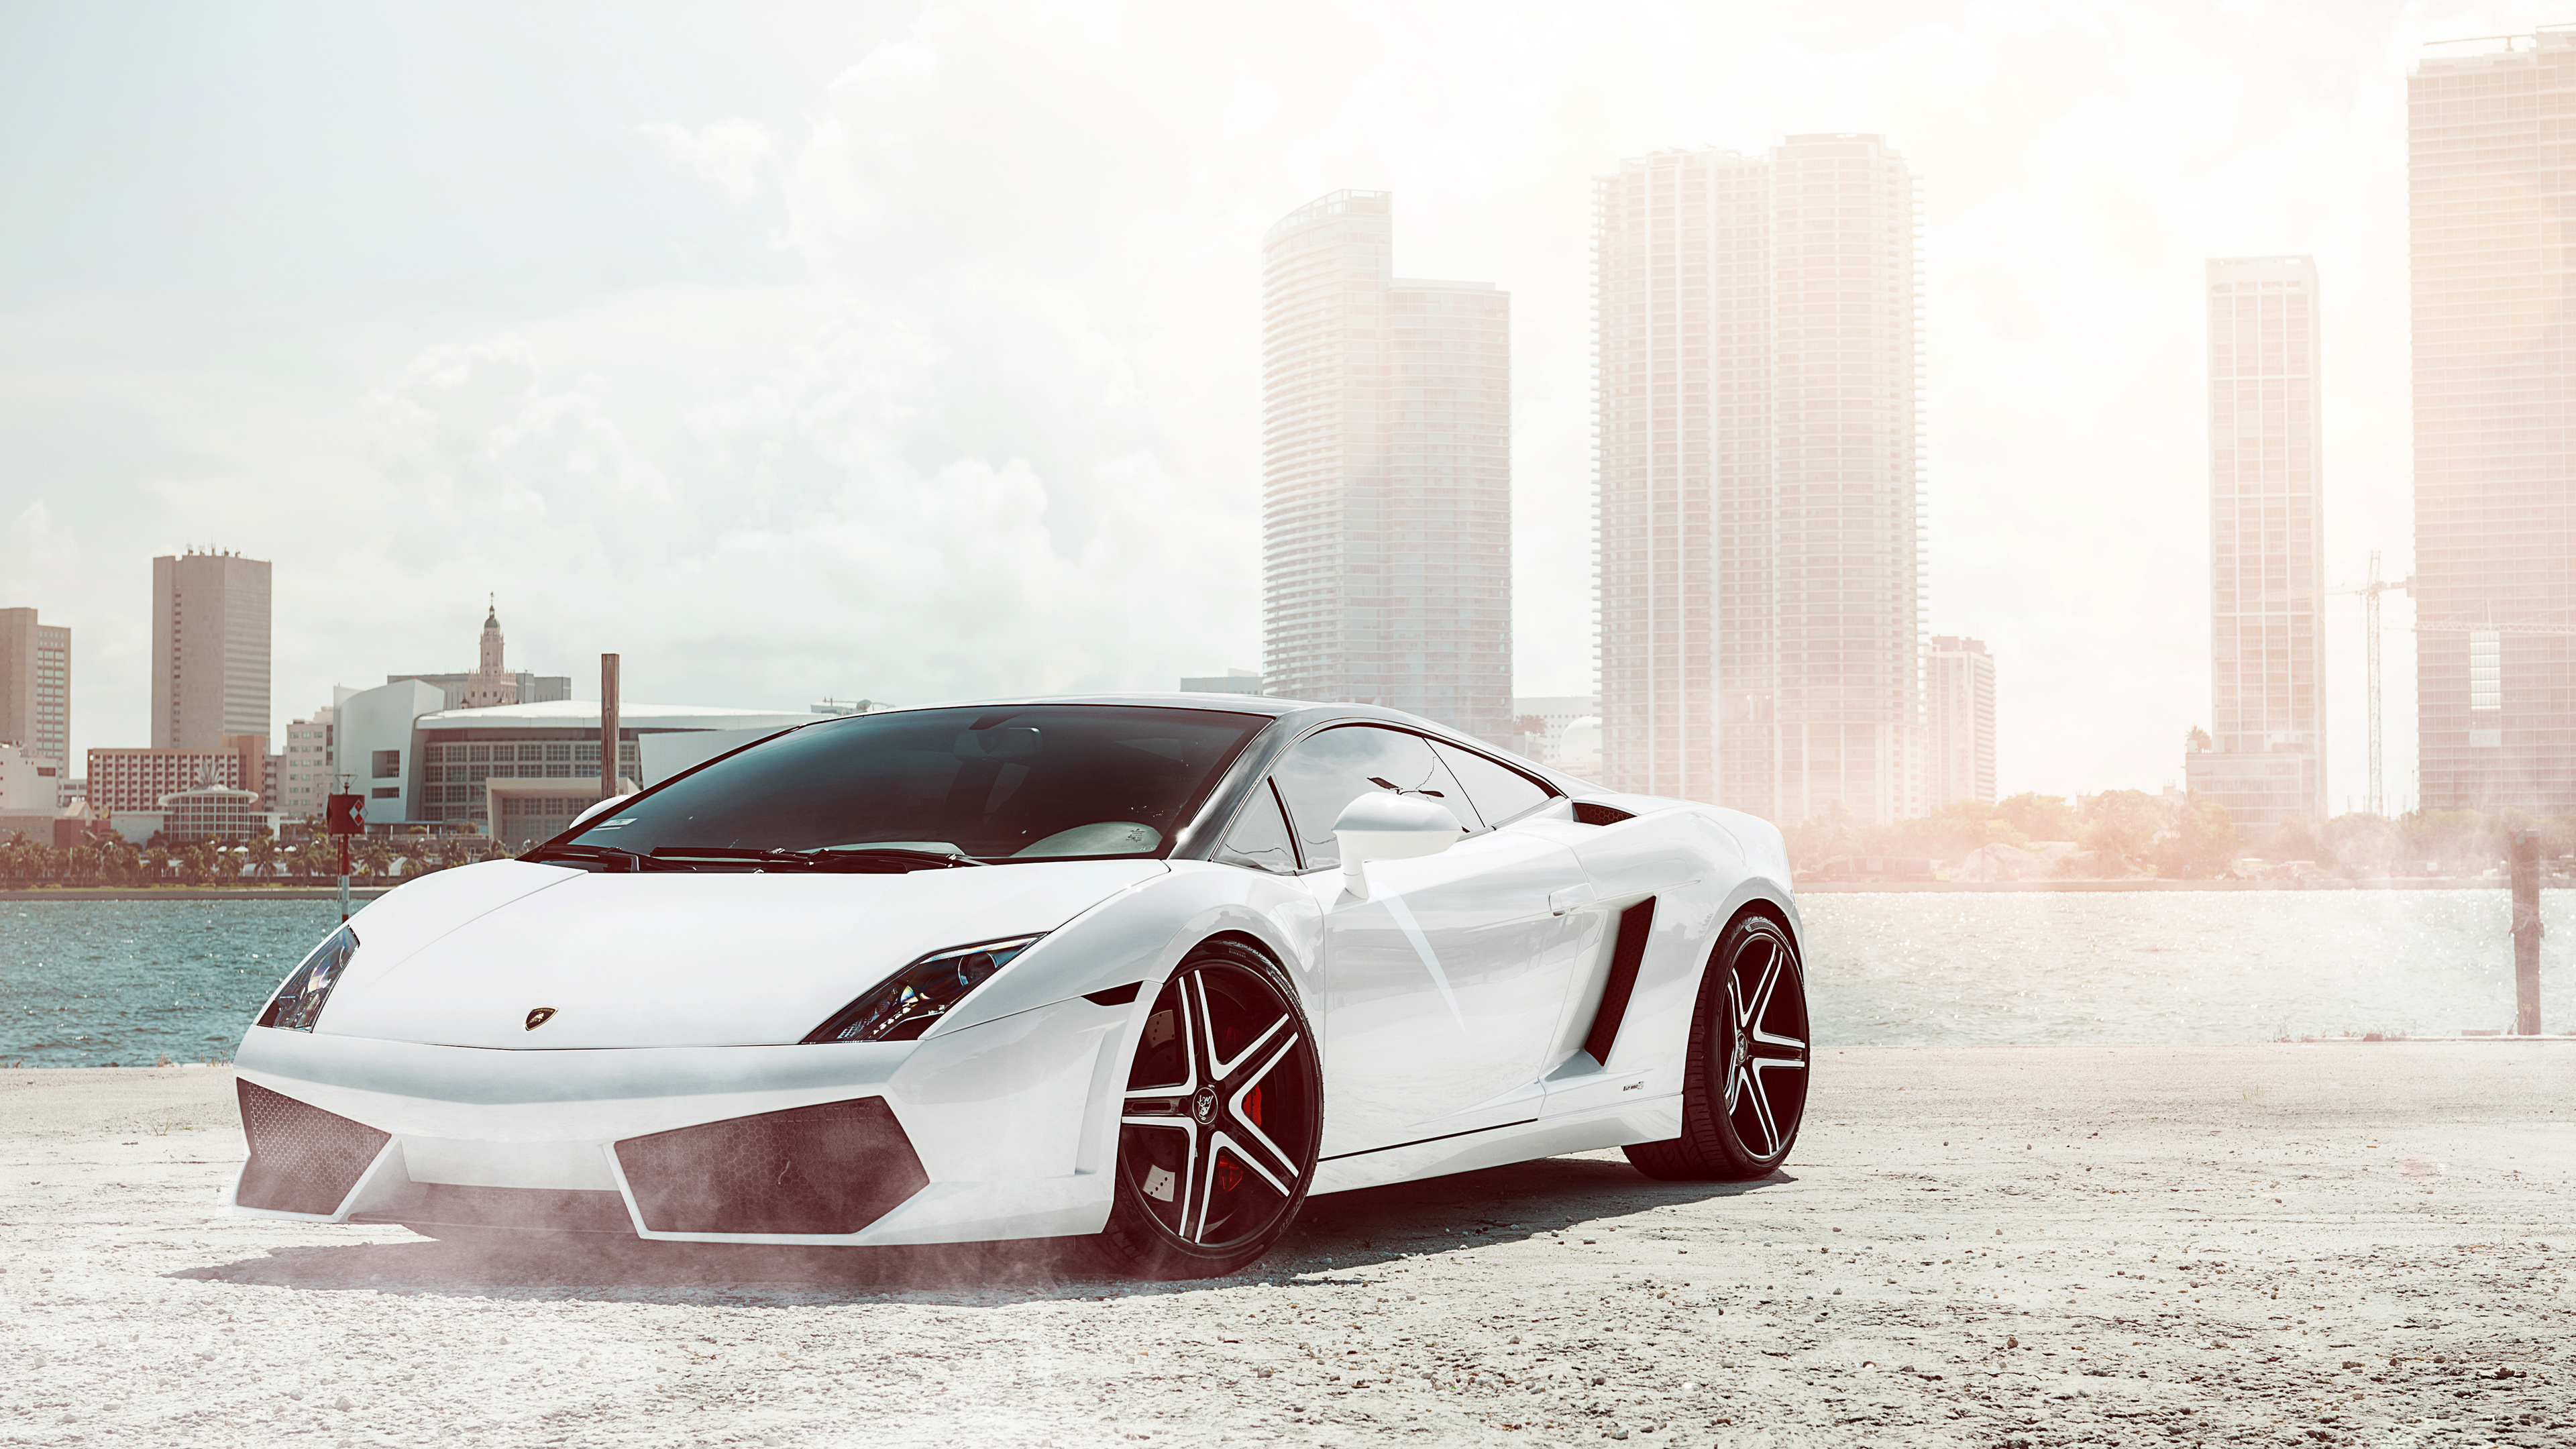 Tags Lamborghini Gallardo White Description Download Wallpaper From The Above HD Widescreen